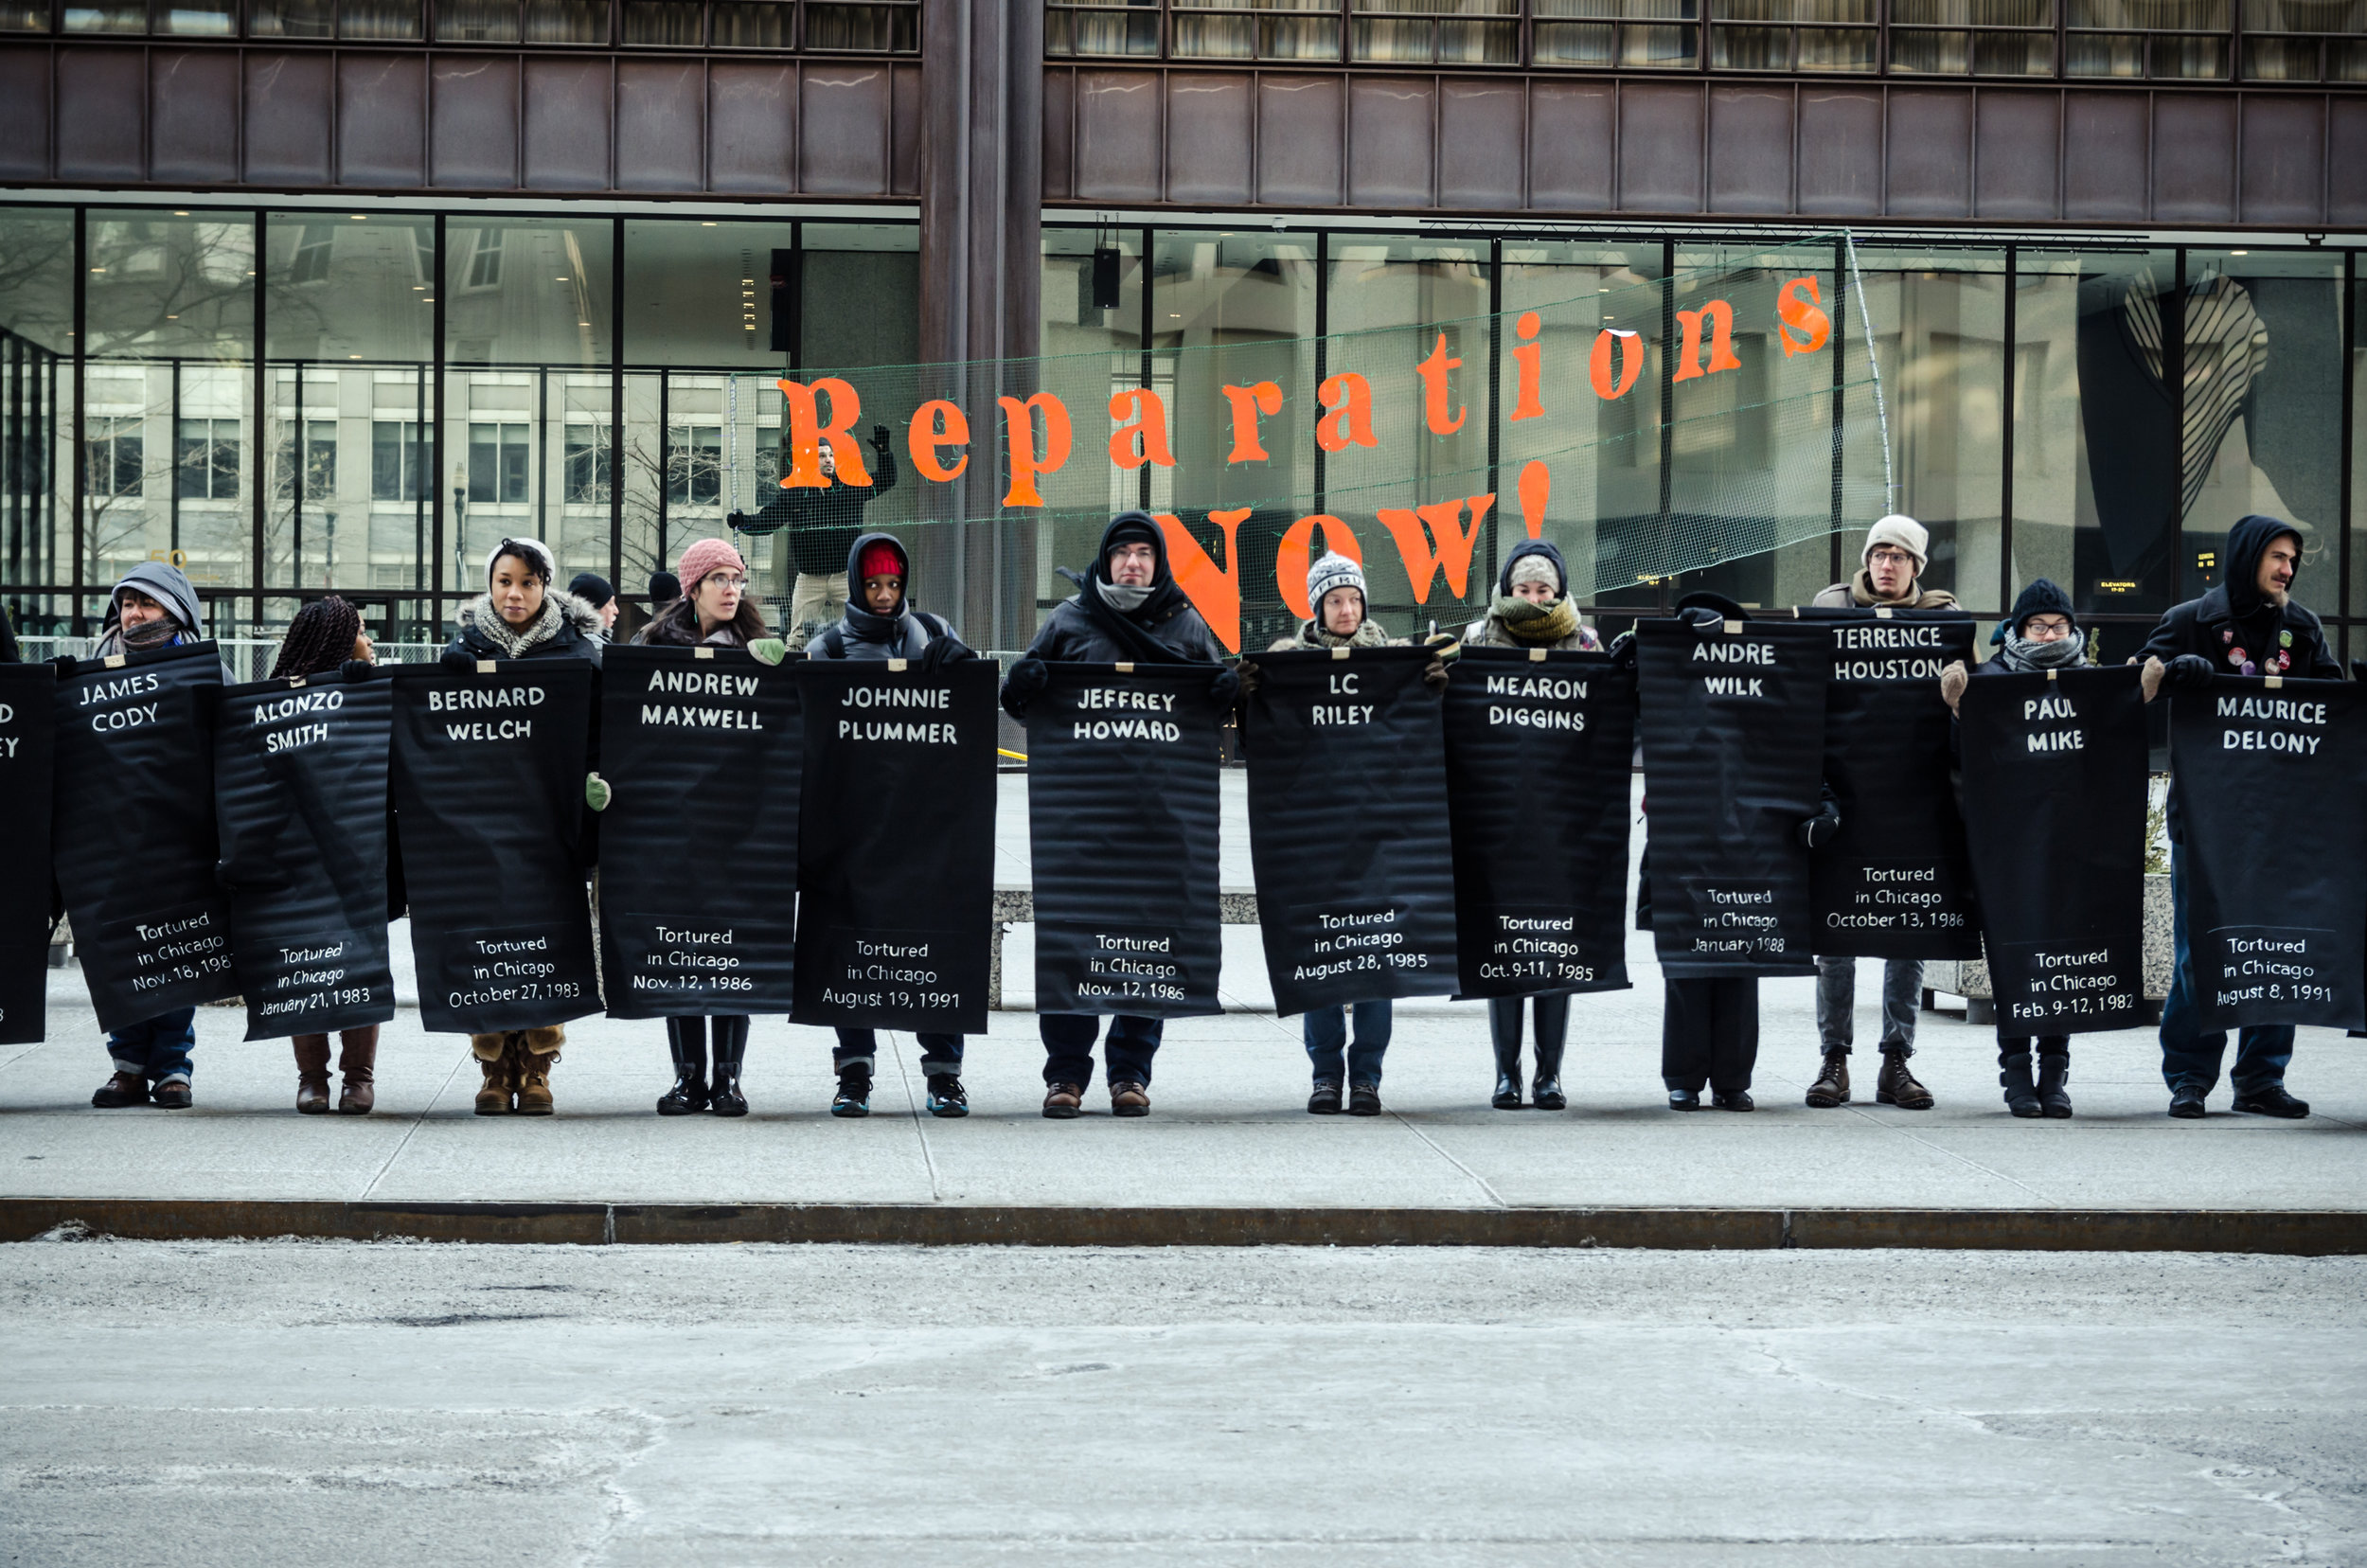 """Image: People lined up facing the camera, holding up black posters with the names of victims of torture by Chicago police inscribed in white. Behind them is a transparent banner with the words """"Reparations NOW!"""" inscribed in orange.  The photo  was taken February 2015 at the Rally for Reparations organized by The Chicago Torture Justice Memorials, Project NIA, Amnesty International USA, and We Charge Genocide. Photo courtesy of the artist ."""